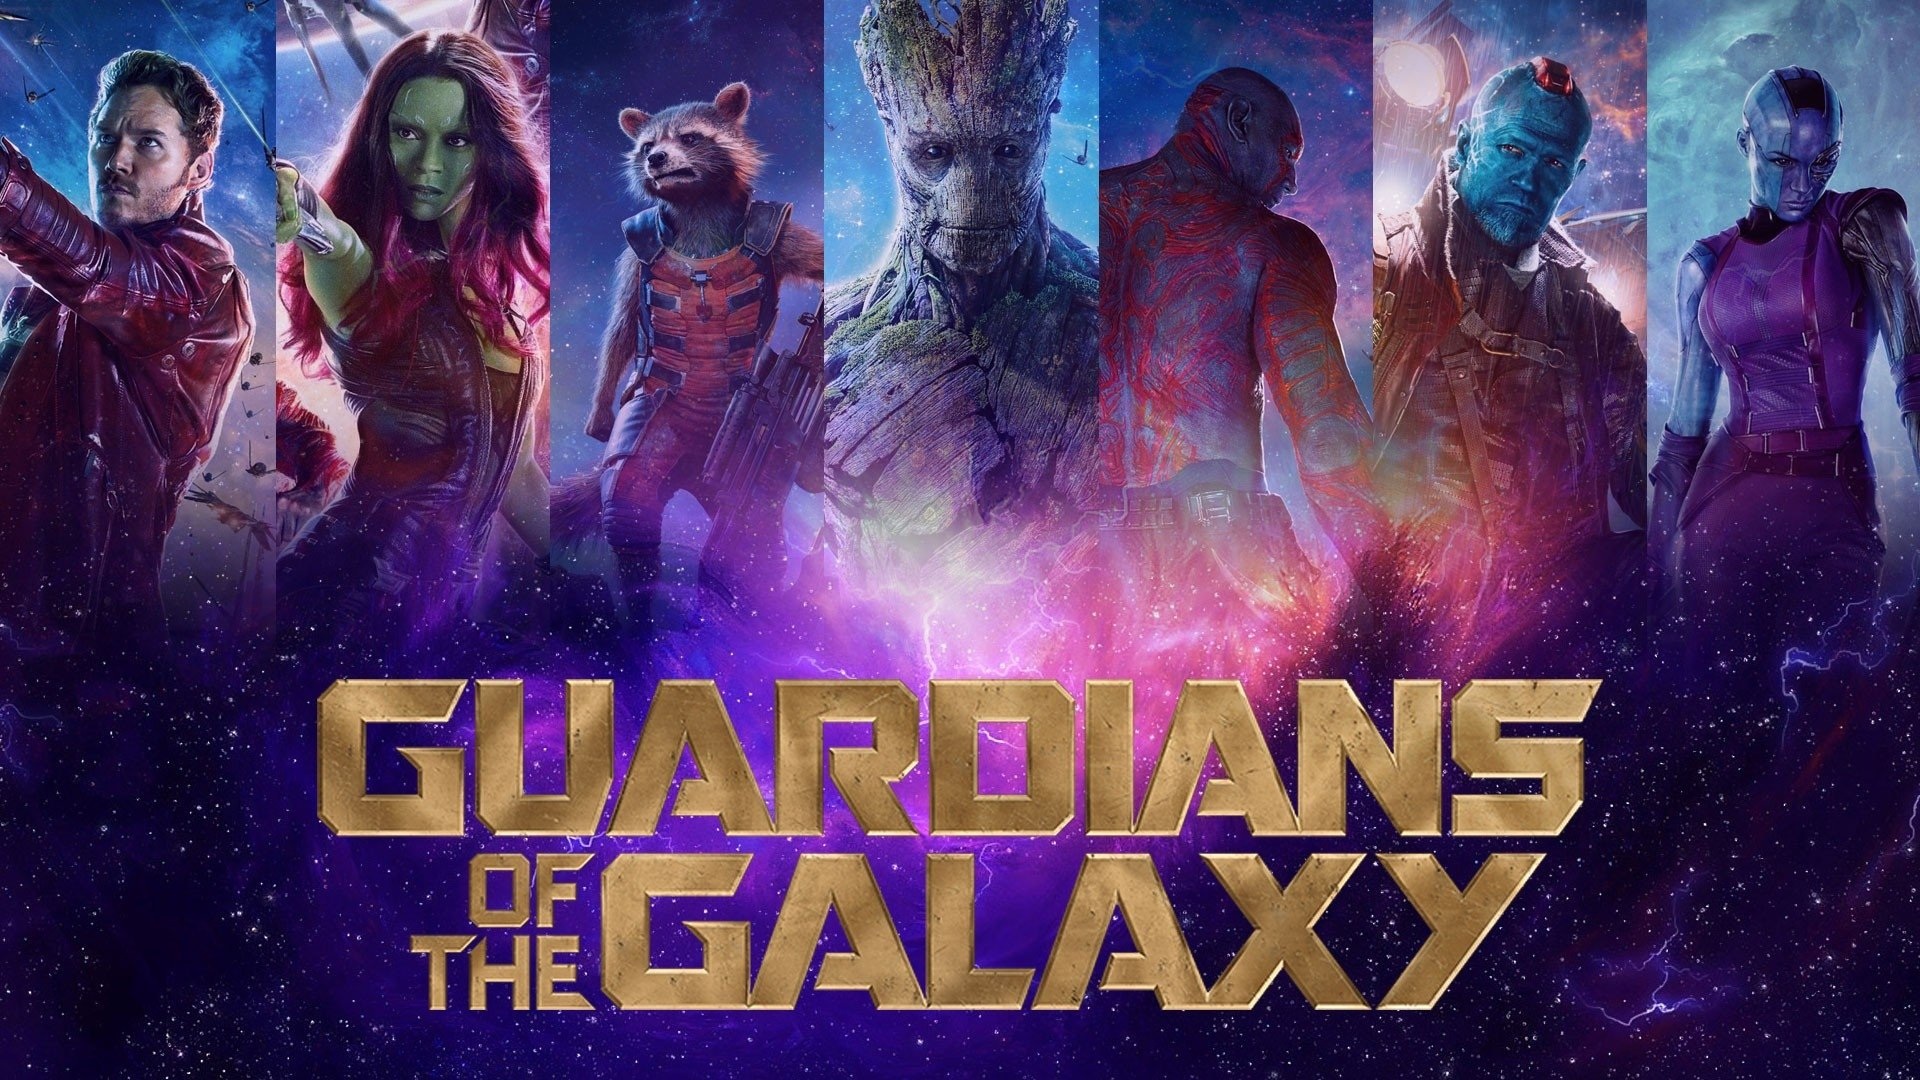 Movie - Guardians of the Galaxy  Star Lord Gamora Rocket Raccoon Groot Drax The Destroyer Yondu Udonta Nebula Wallpaper